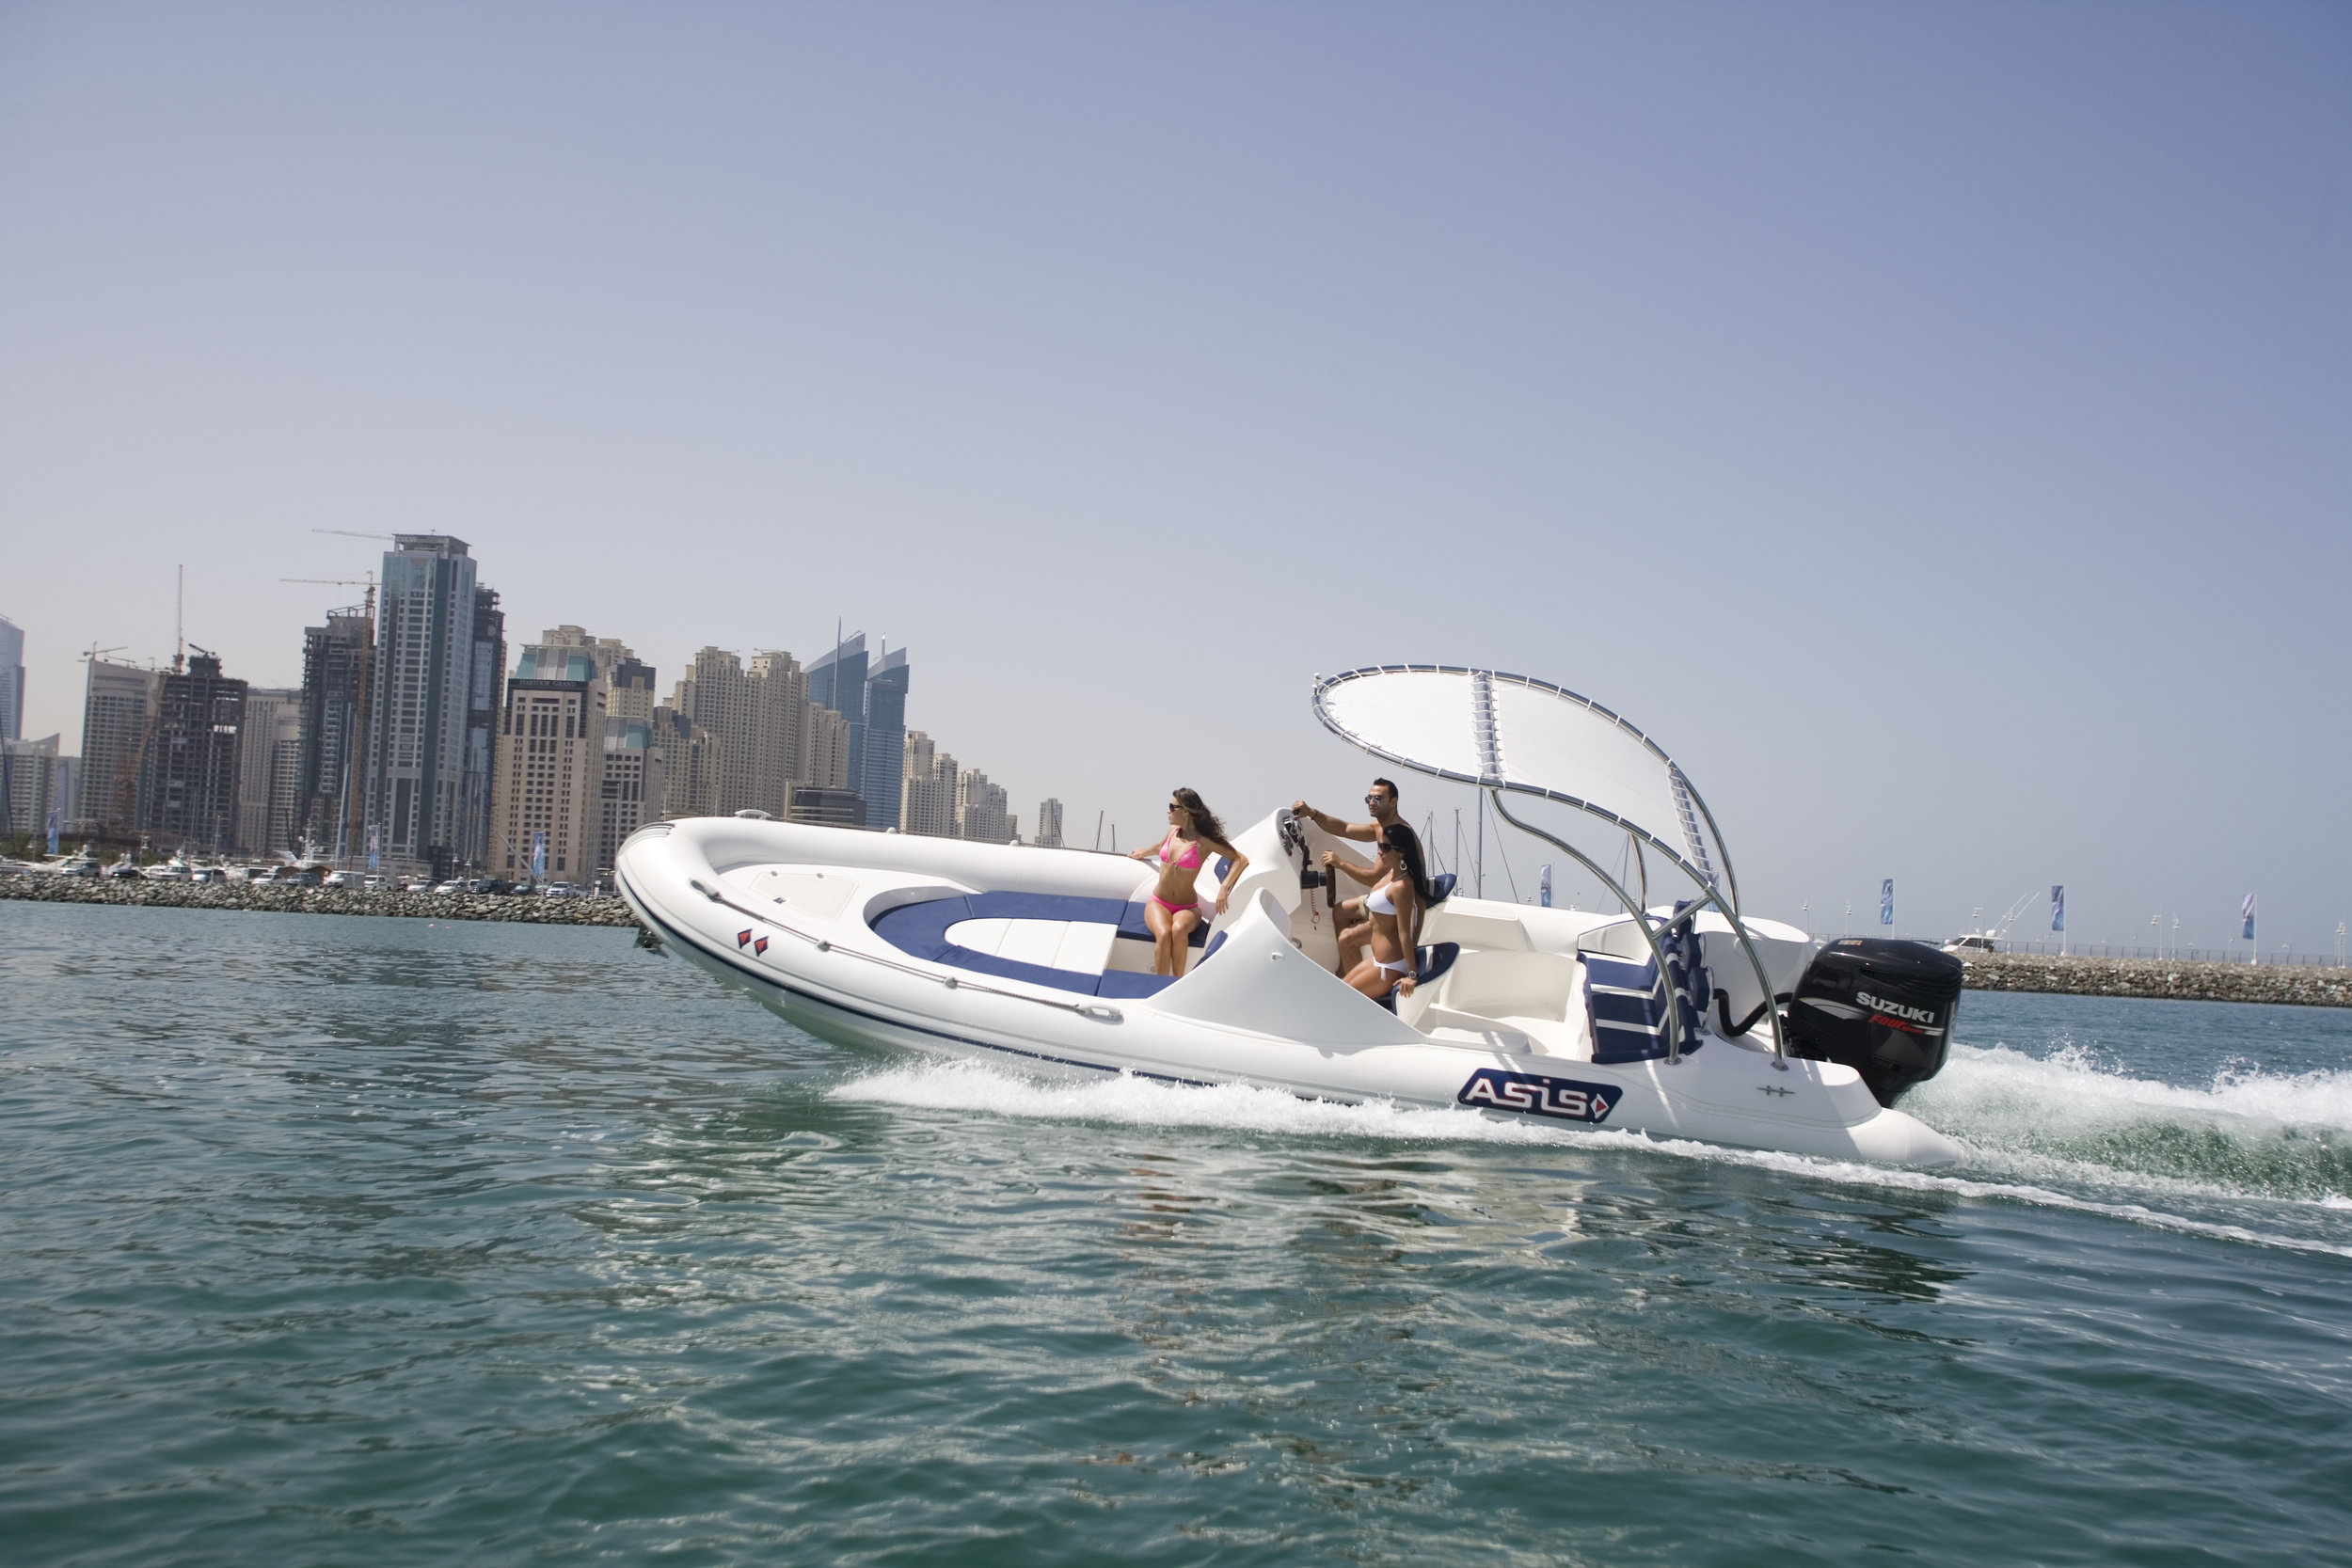 Elite RIB Boat 8m 1 - SPECIFICATIONSLength: 790 cmBeam: 260 cmN°persons: 15Maximum Power: 300 hp